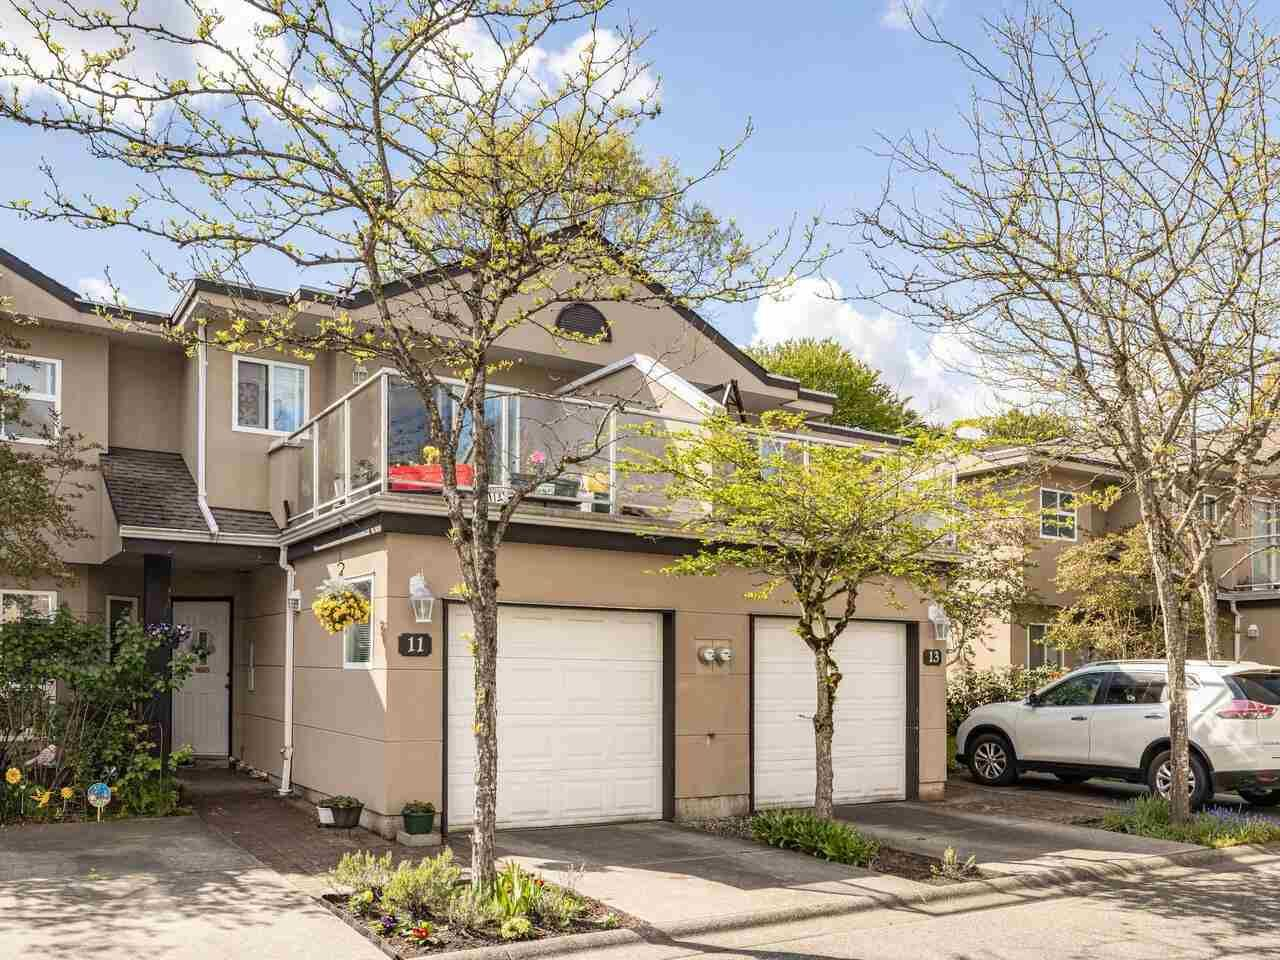 Main Photo: 11 15875 84 AVE Avenue in Surrey: Fleetwood Tynehead Townhouse for sale : MLS®# R2574652